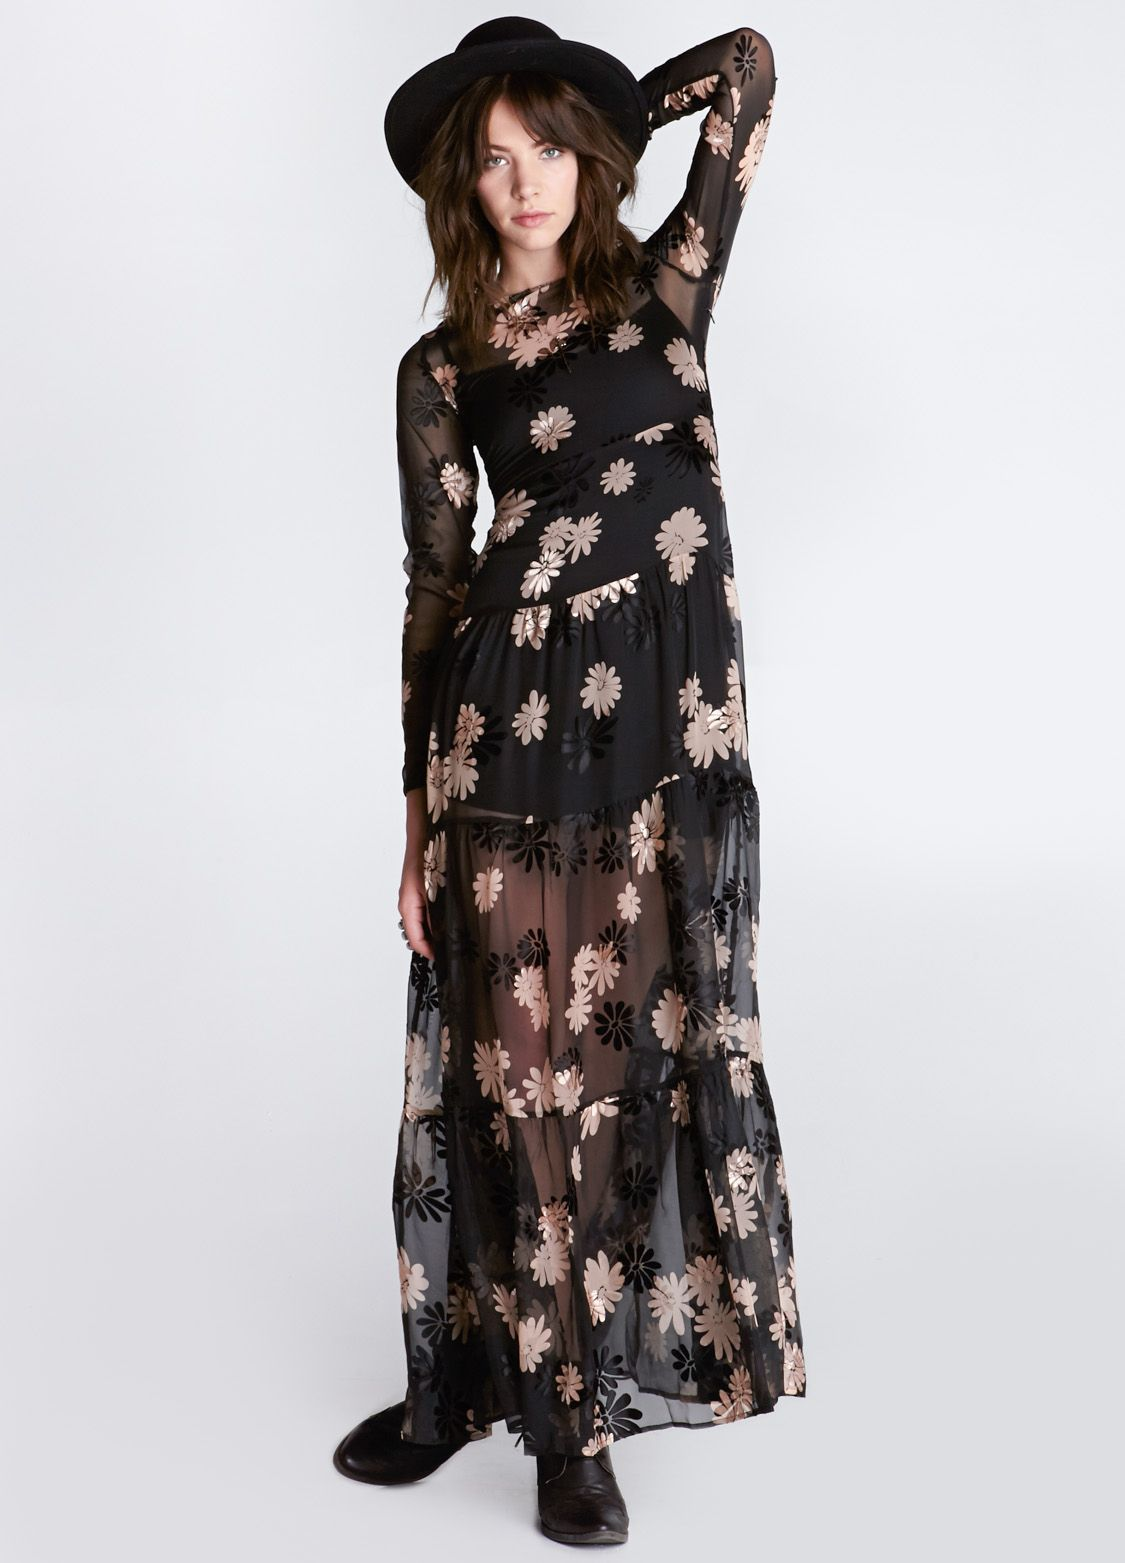 Sheer black maxi dress featuring long sleeves and allover daisy